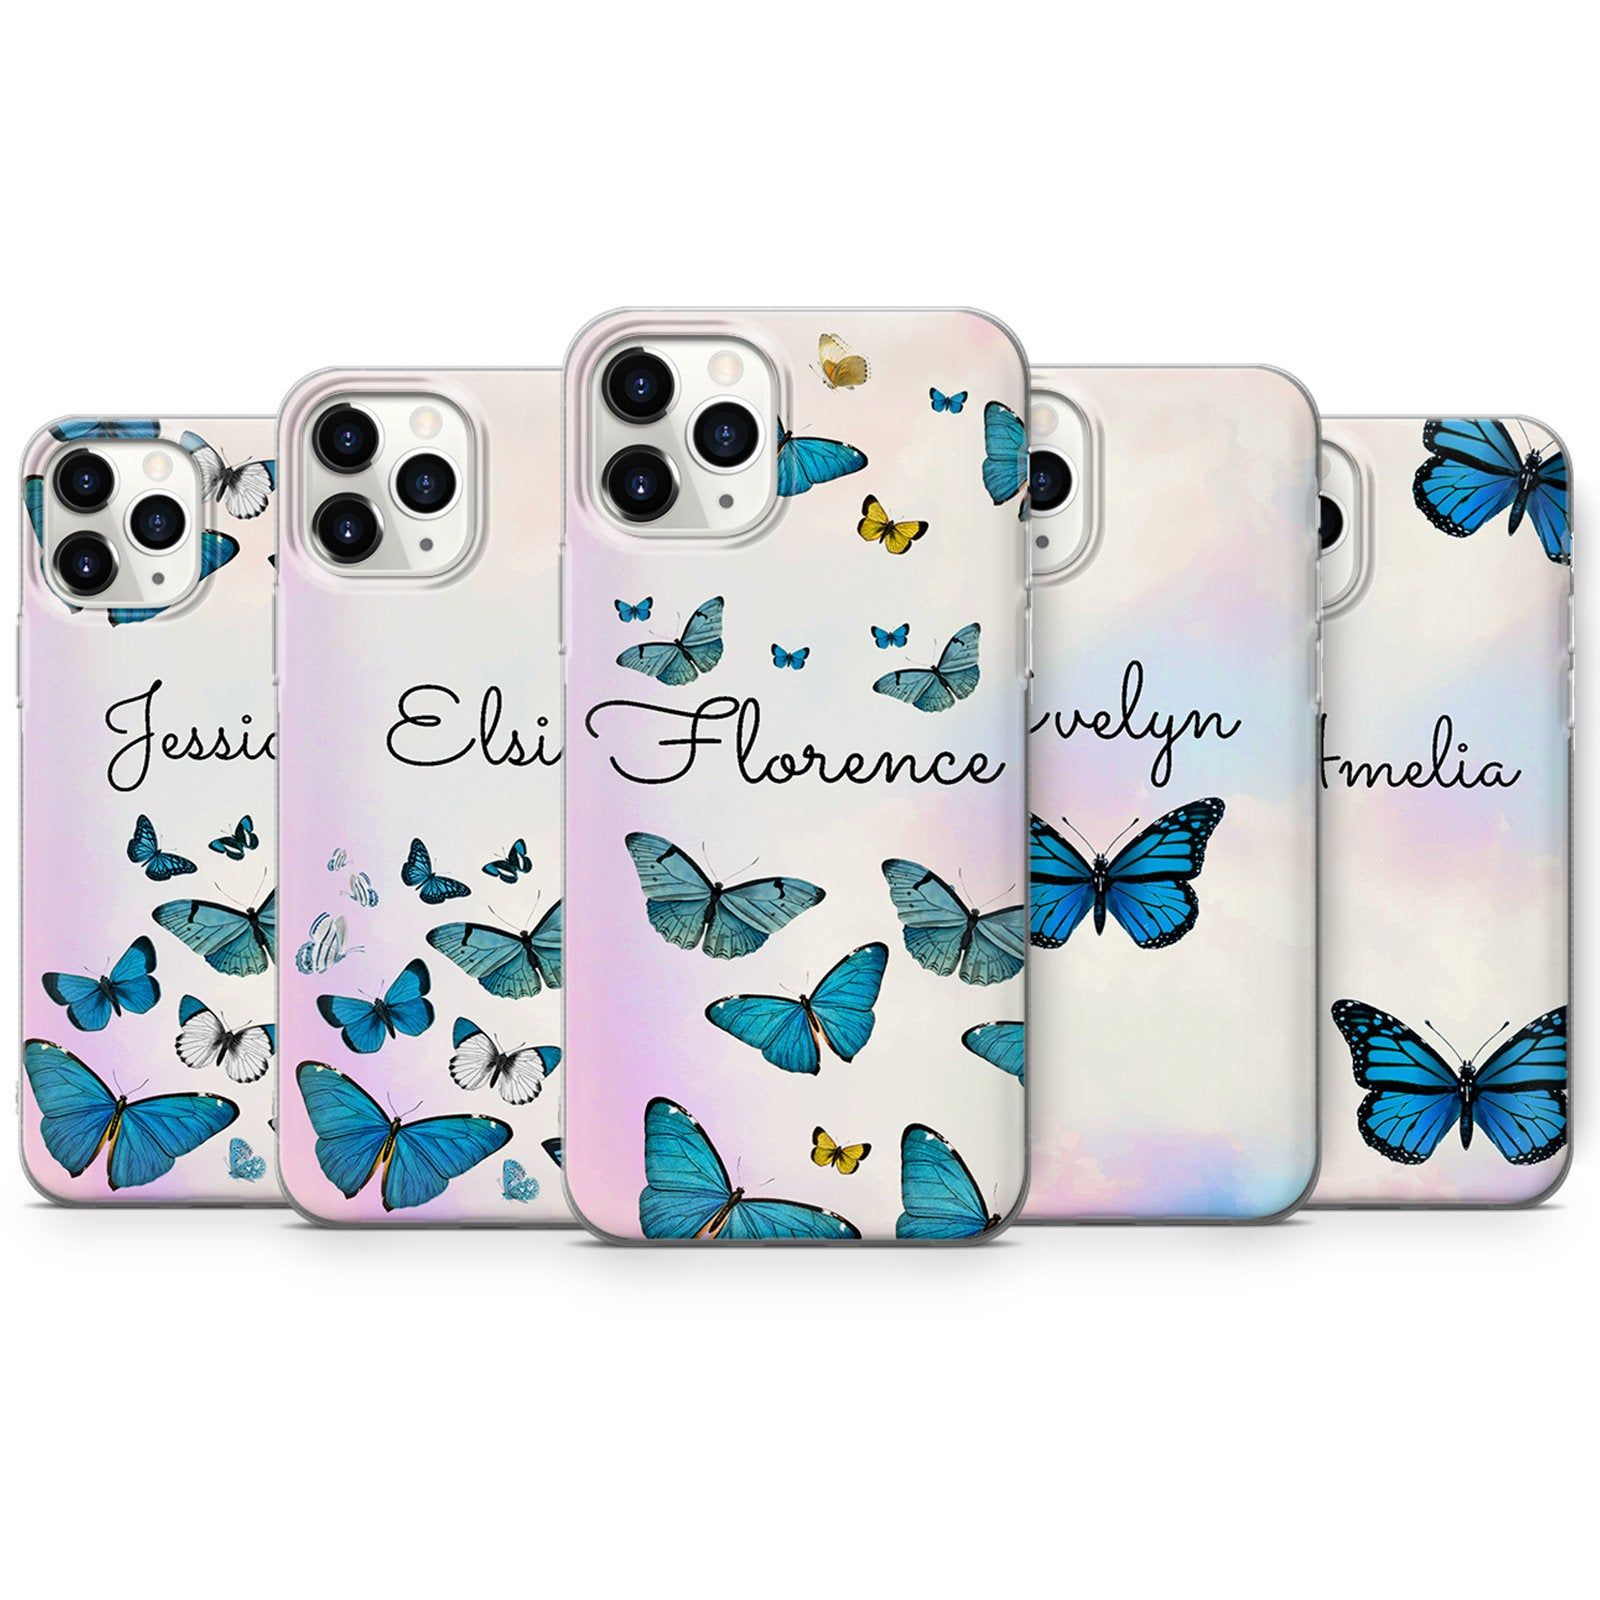 Personalised Butterfly Phone Case Initials Custom Cover Iphone 12 11 Pro Xr Xs 8 7 Samsung S10 S20 S21 A40 A50 A51 Huawei P20 P30 Lite In 2021 Iphone Cover Phone Cases Phone Case Design